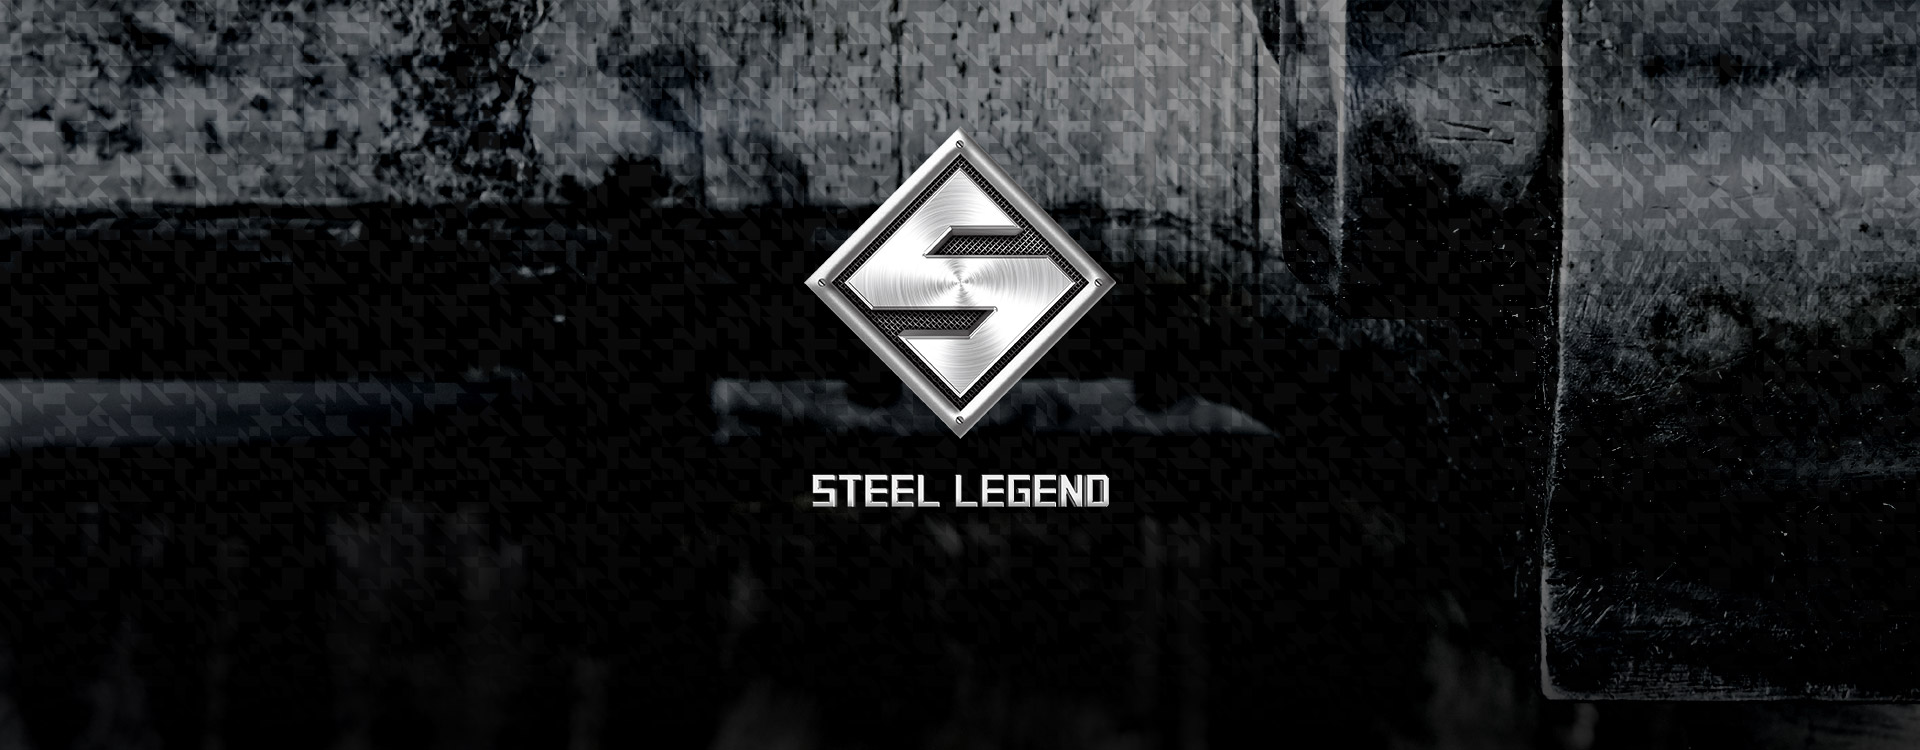 SteelLegend-KeyImage